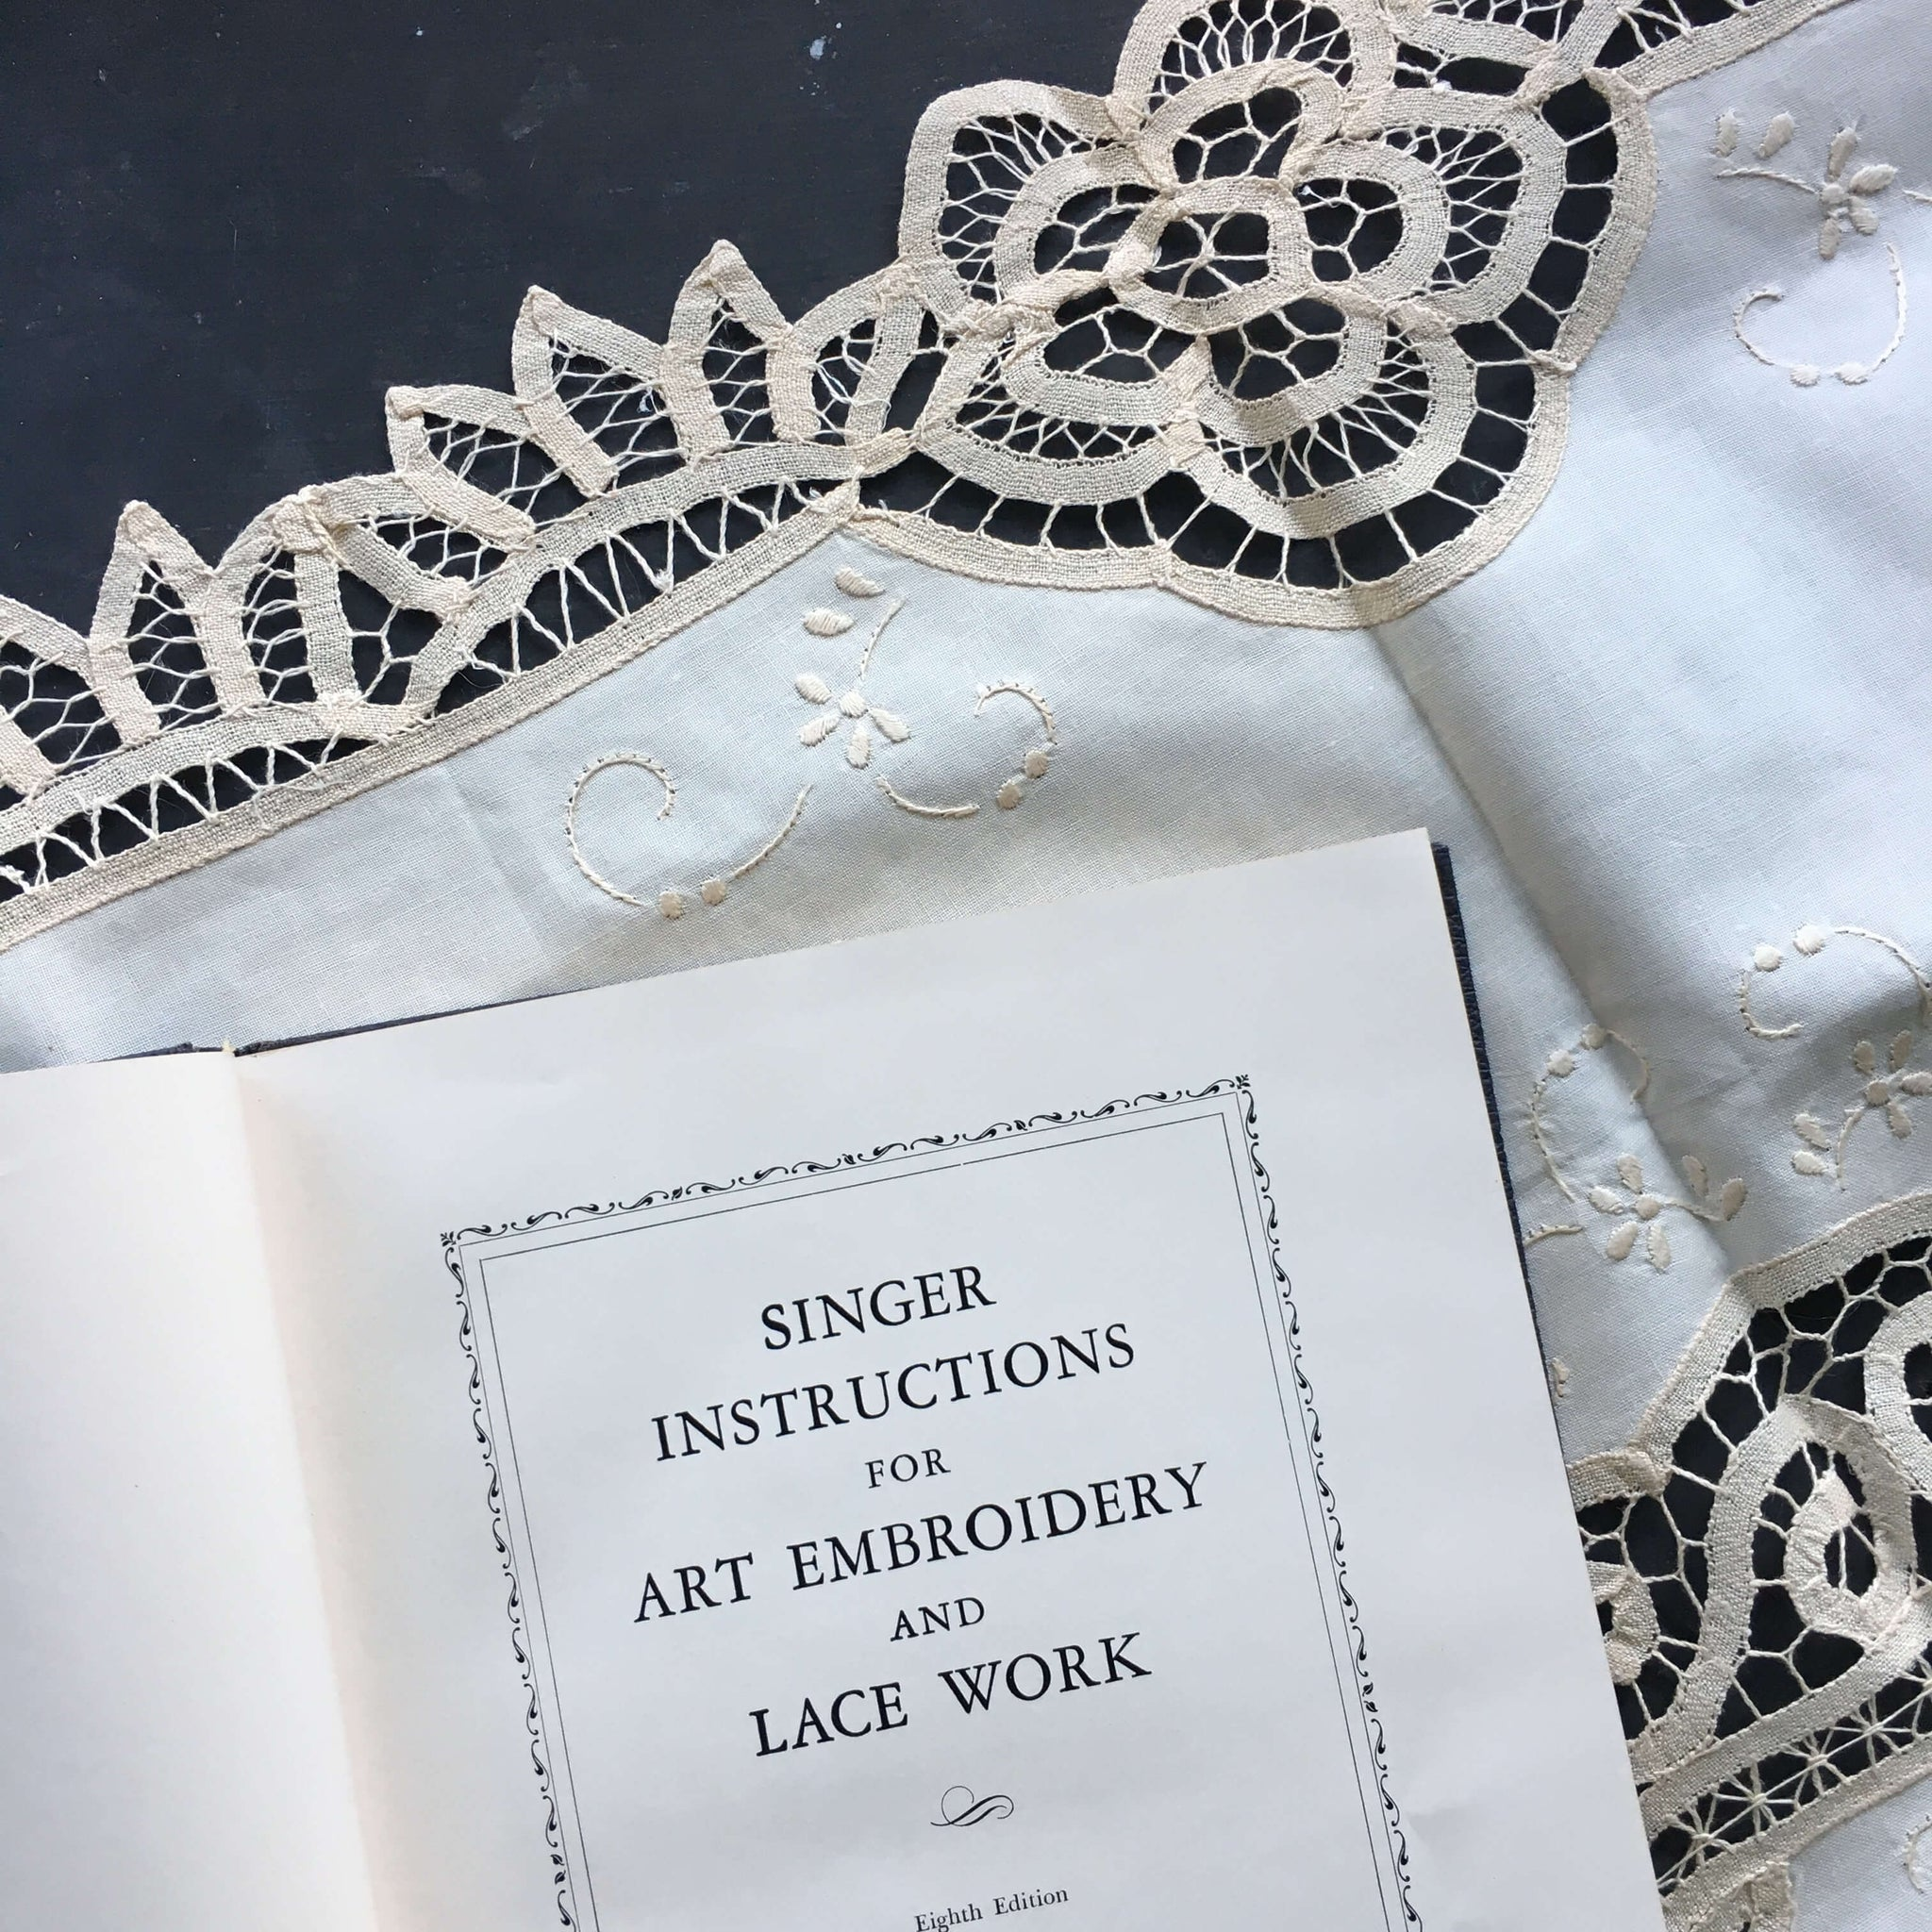 Singer Instructions for Art Embroidery and Lace Work - 1948 Edition - Singer Sewing Machines Instruction Book